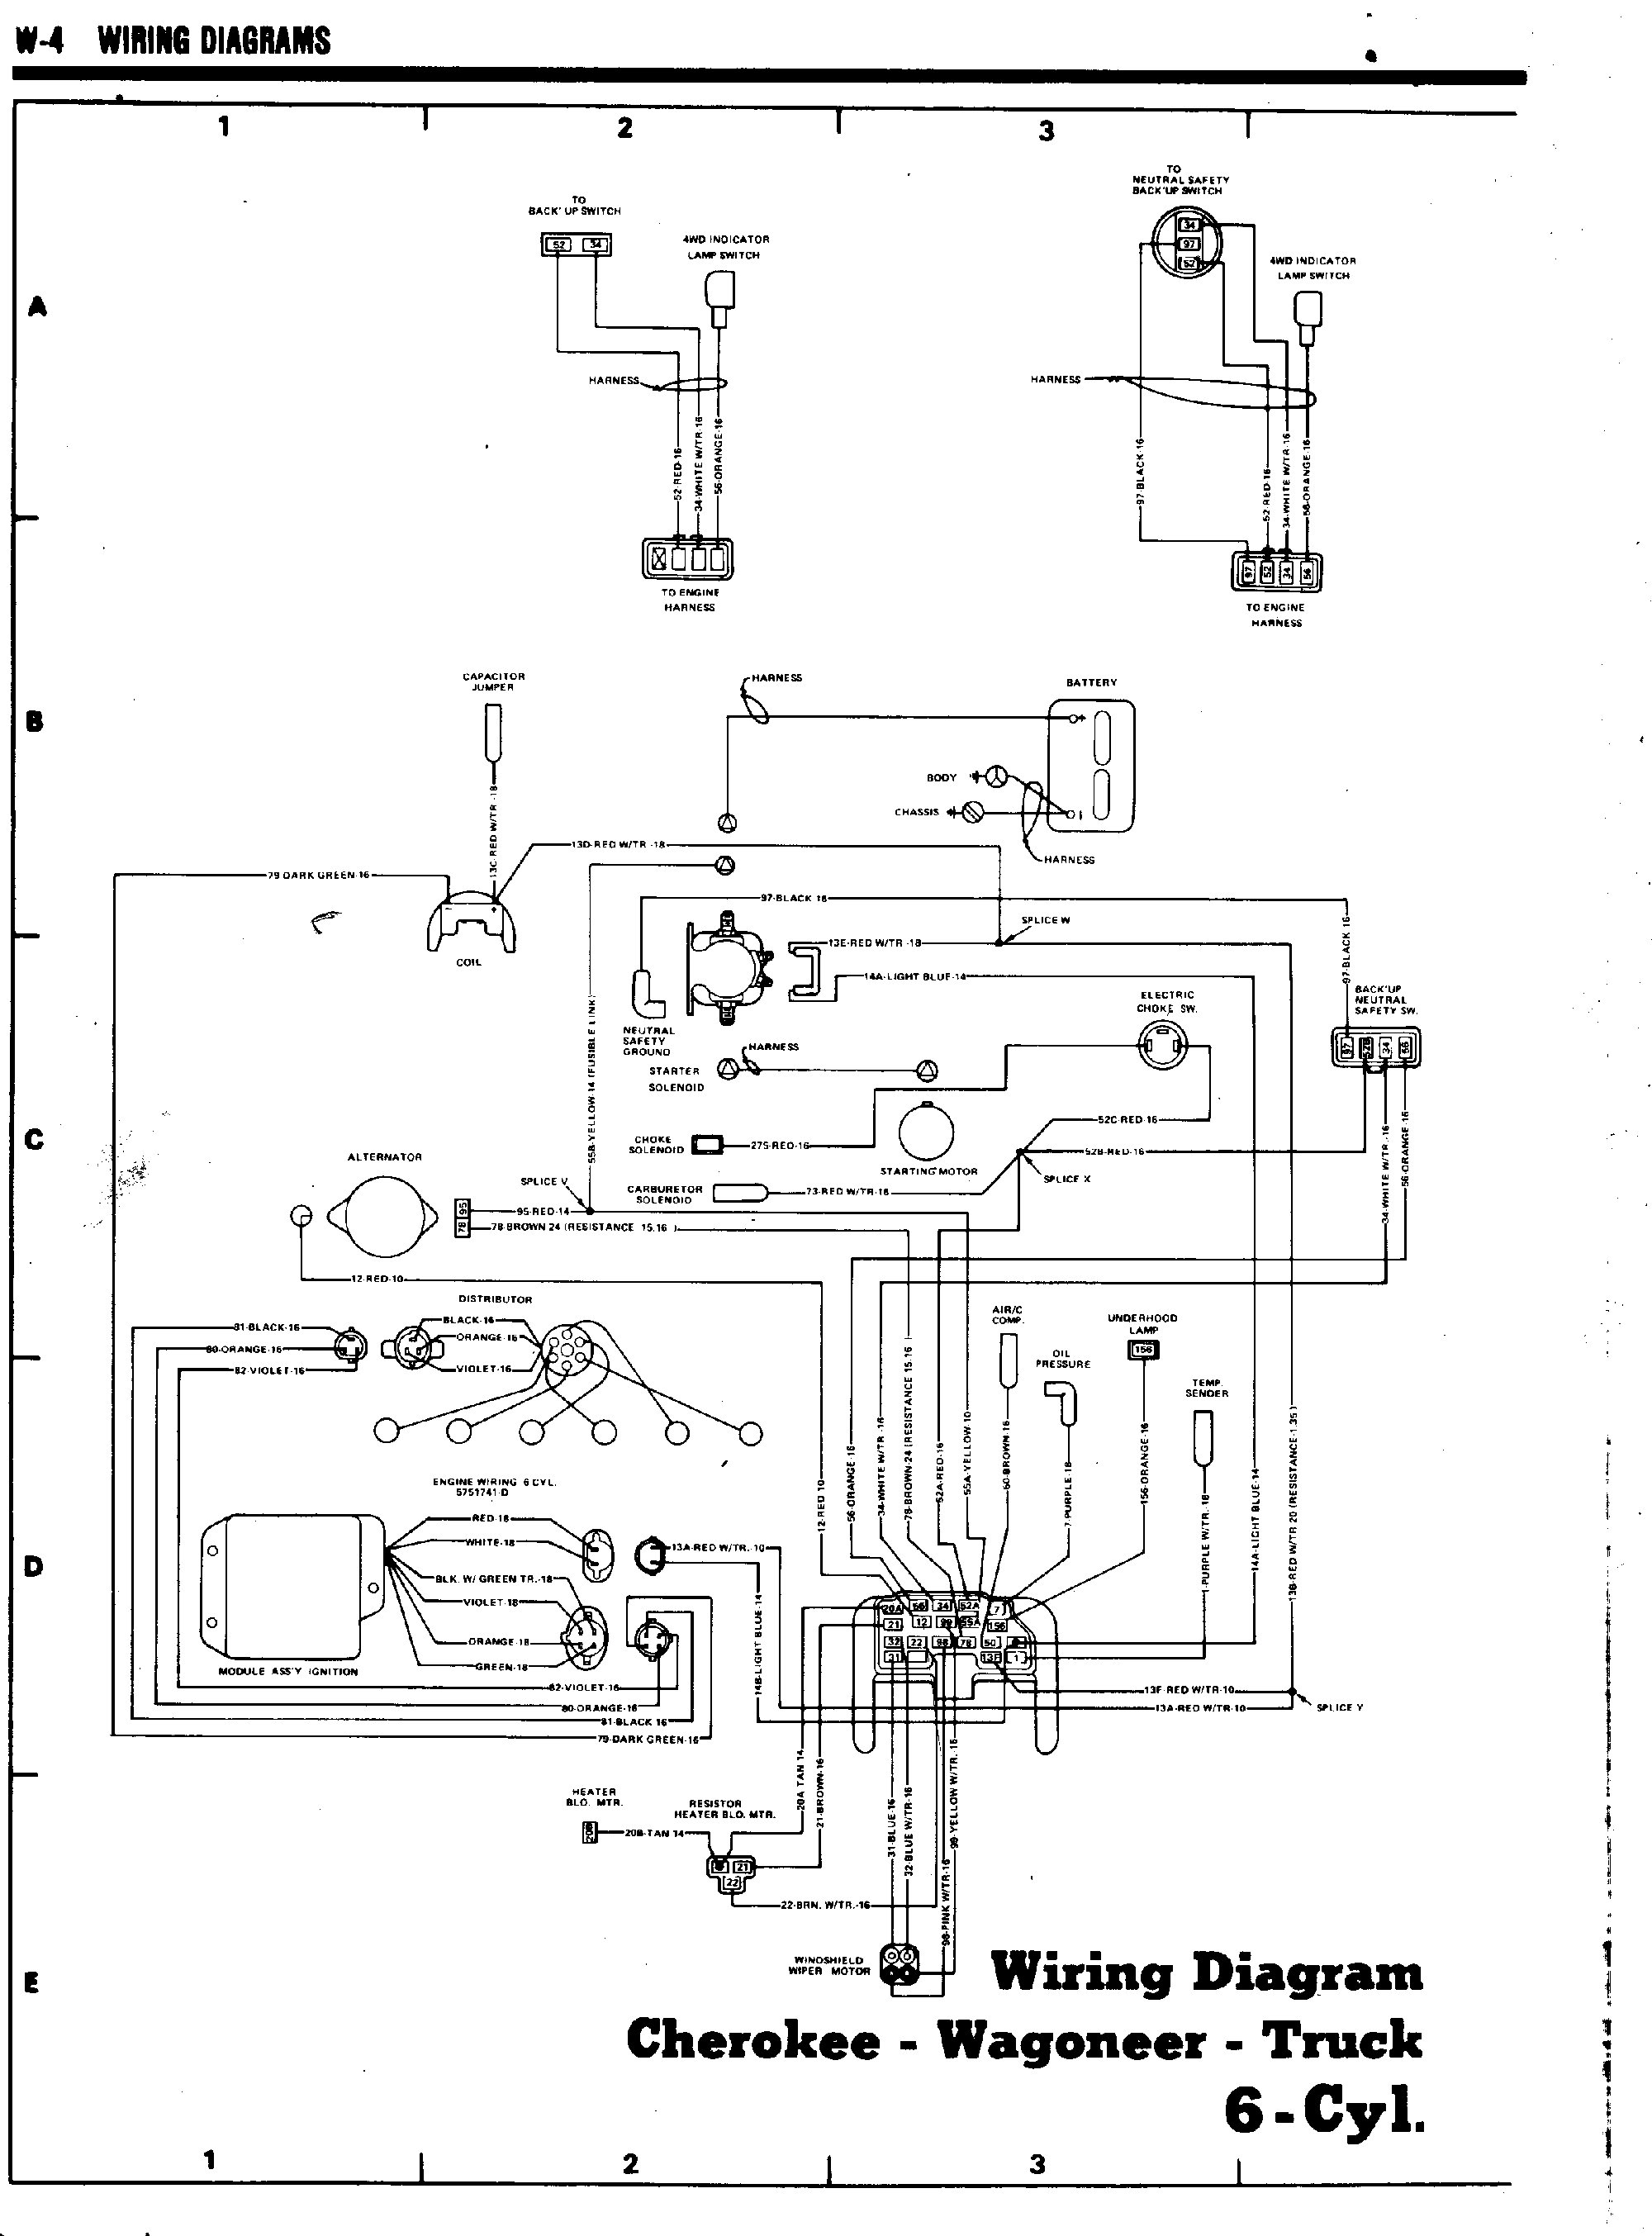 1991 Jeep Cherokee 4 Liter Fuse Box Diagram